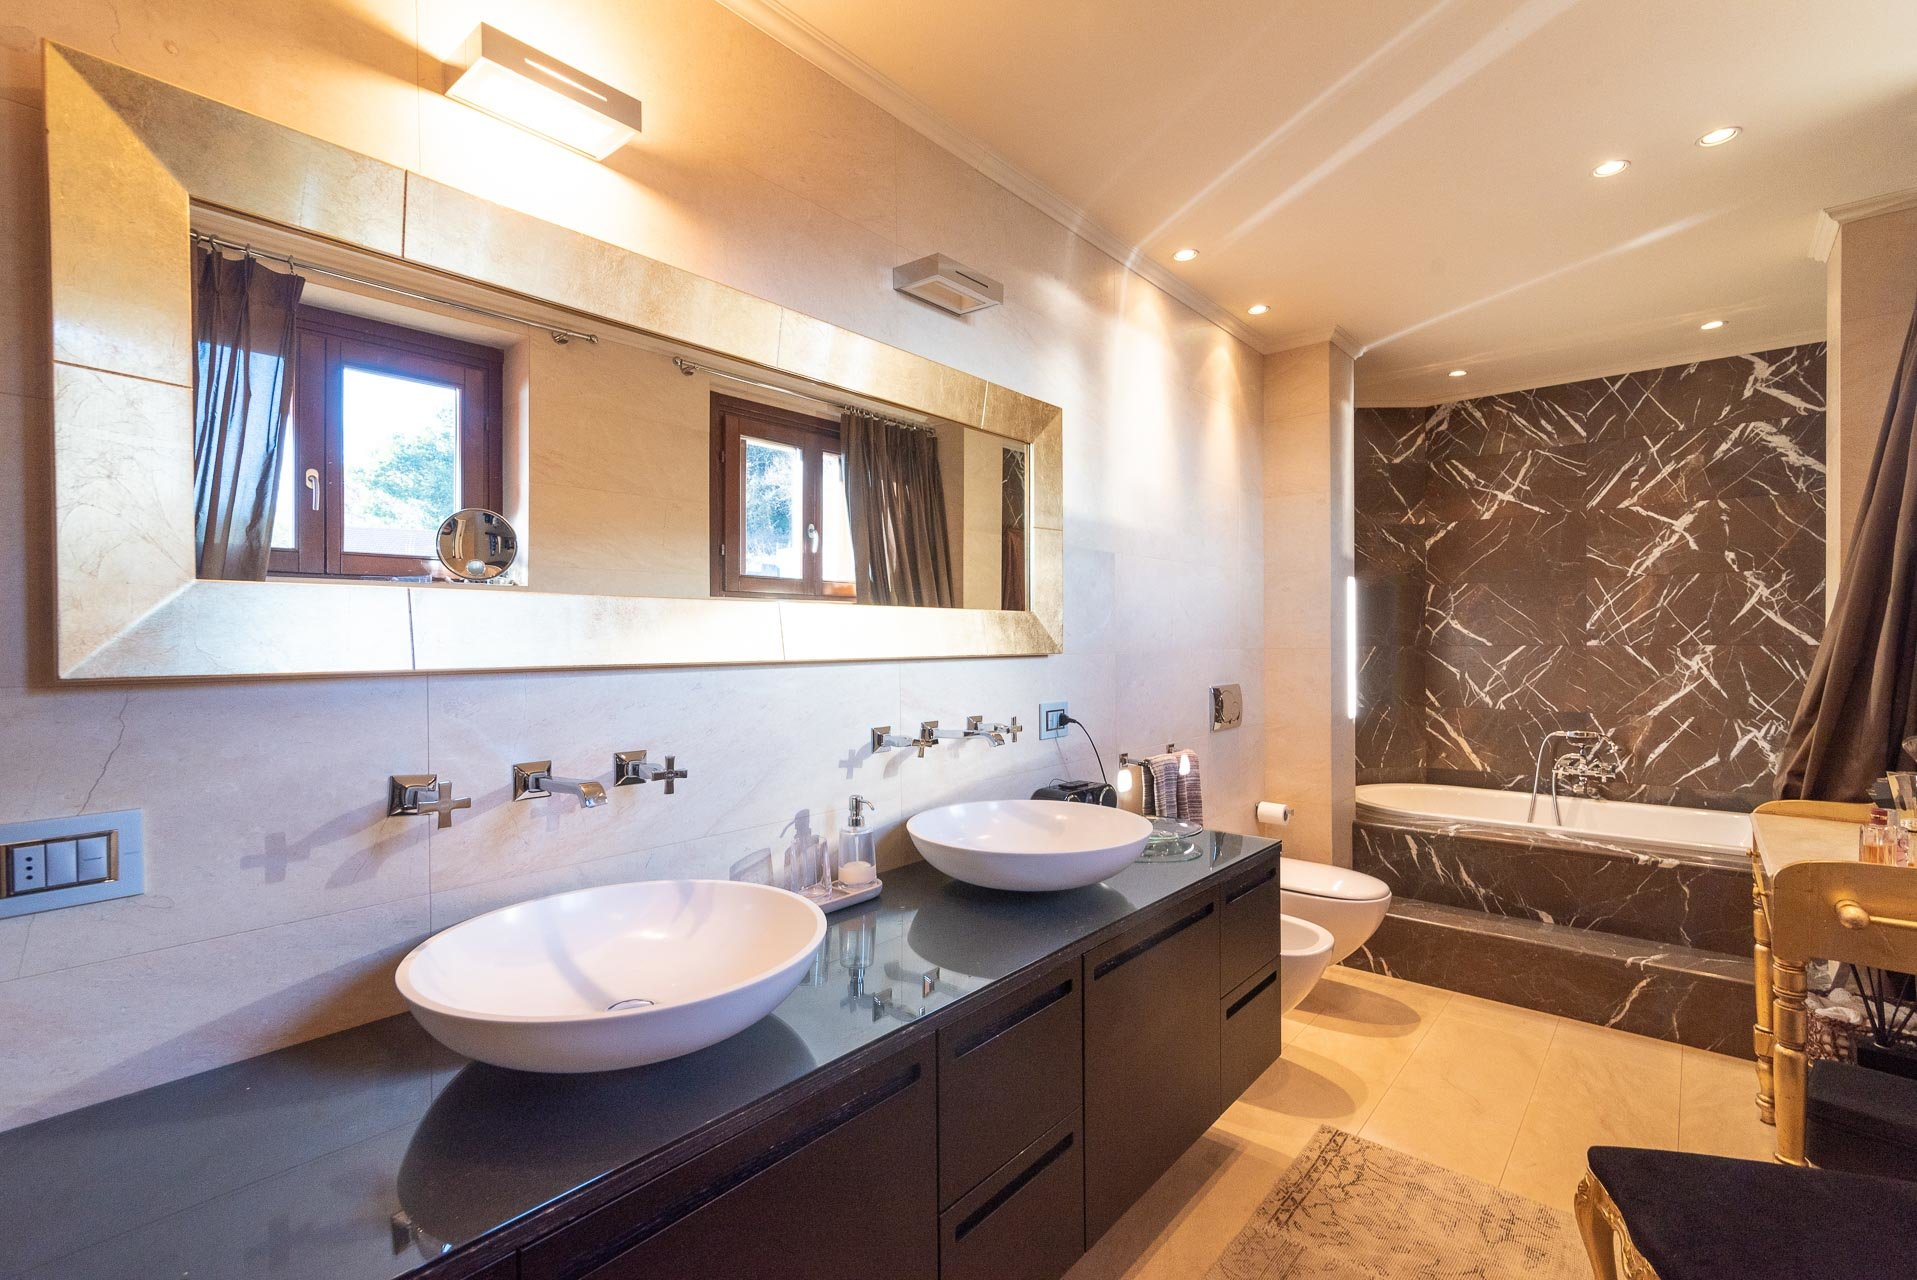 Modern villa with swimming pool for sale in Verbania - double-sink bathroom